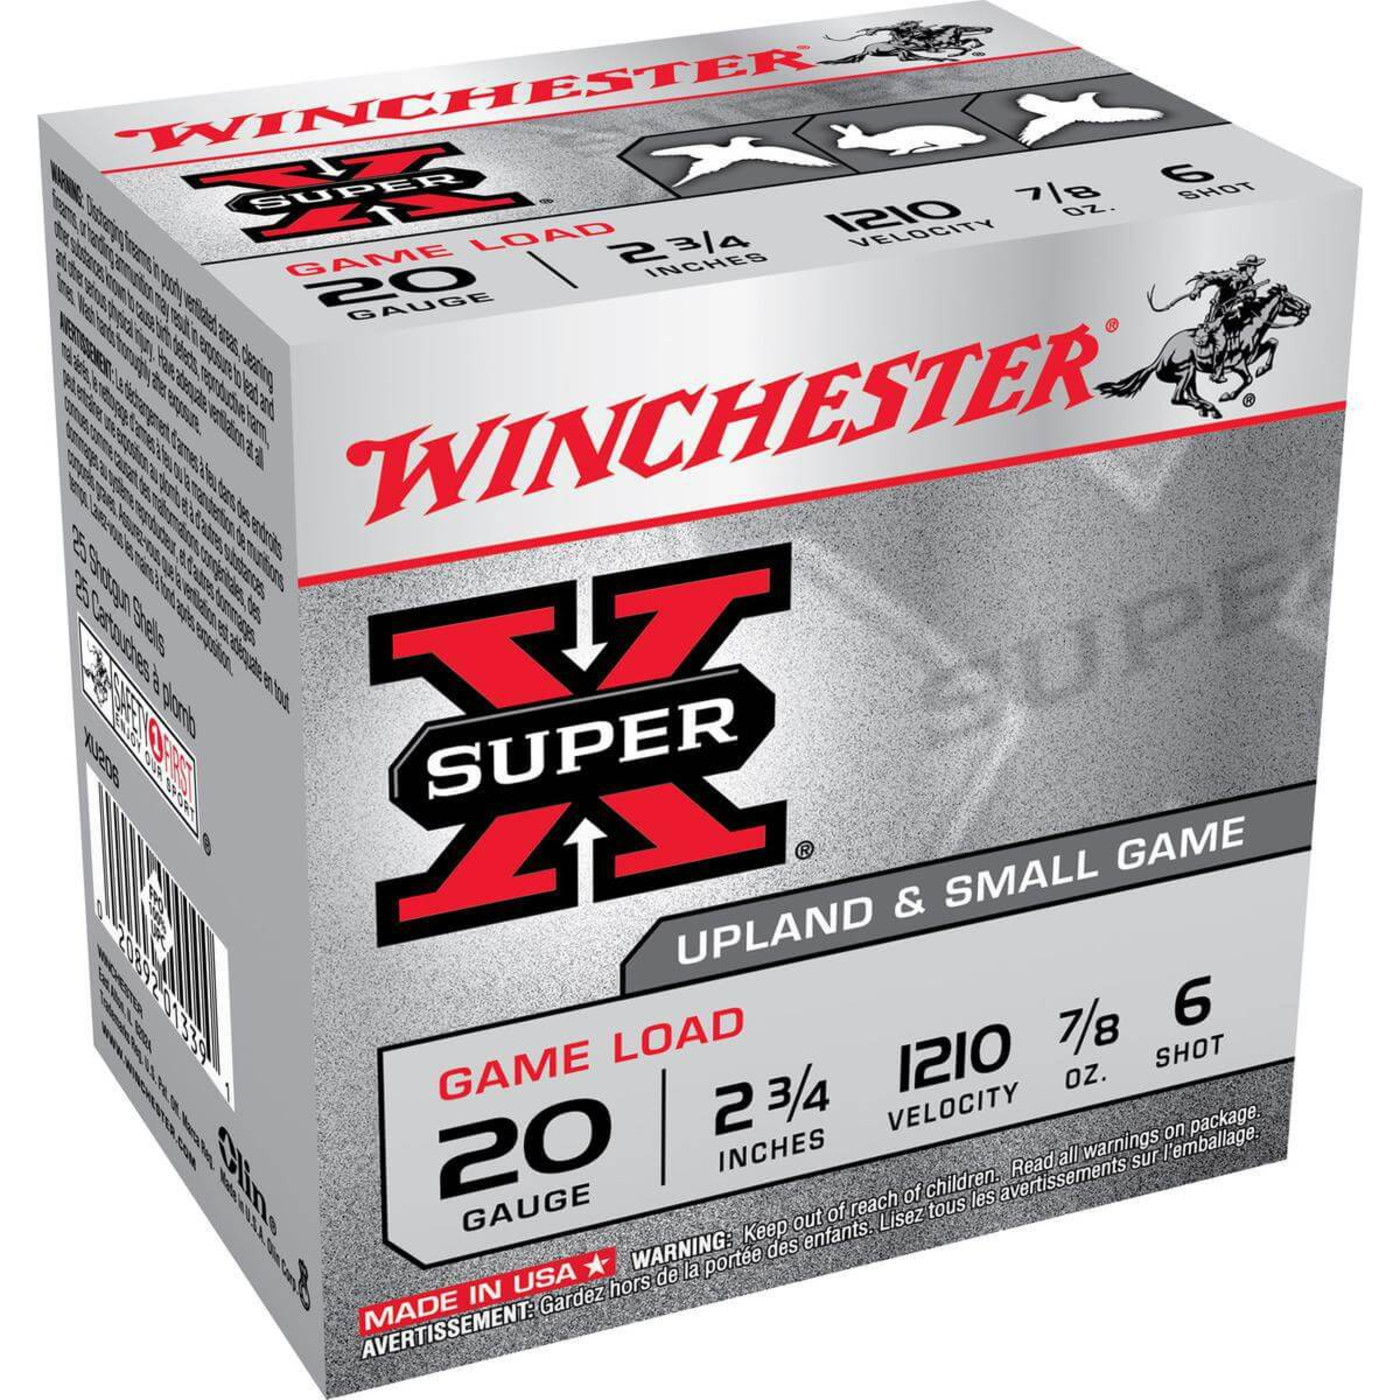 "Winchester XU20 Heavy Game 20 Ga 2 3/4"" 7/8 Oz - Case in Shot Size 6 Ammo Size"